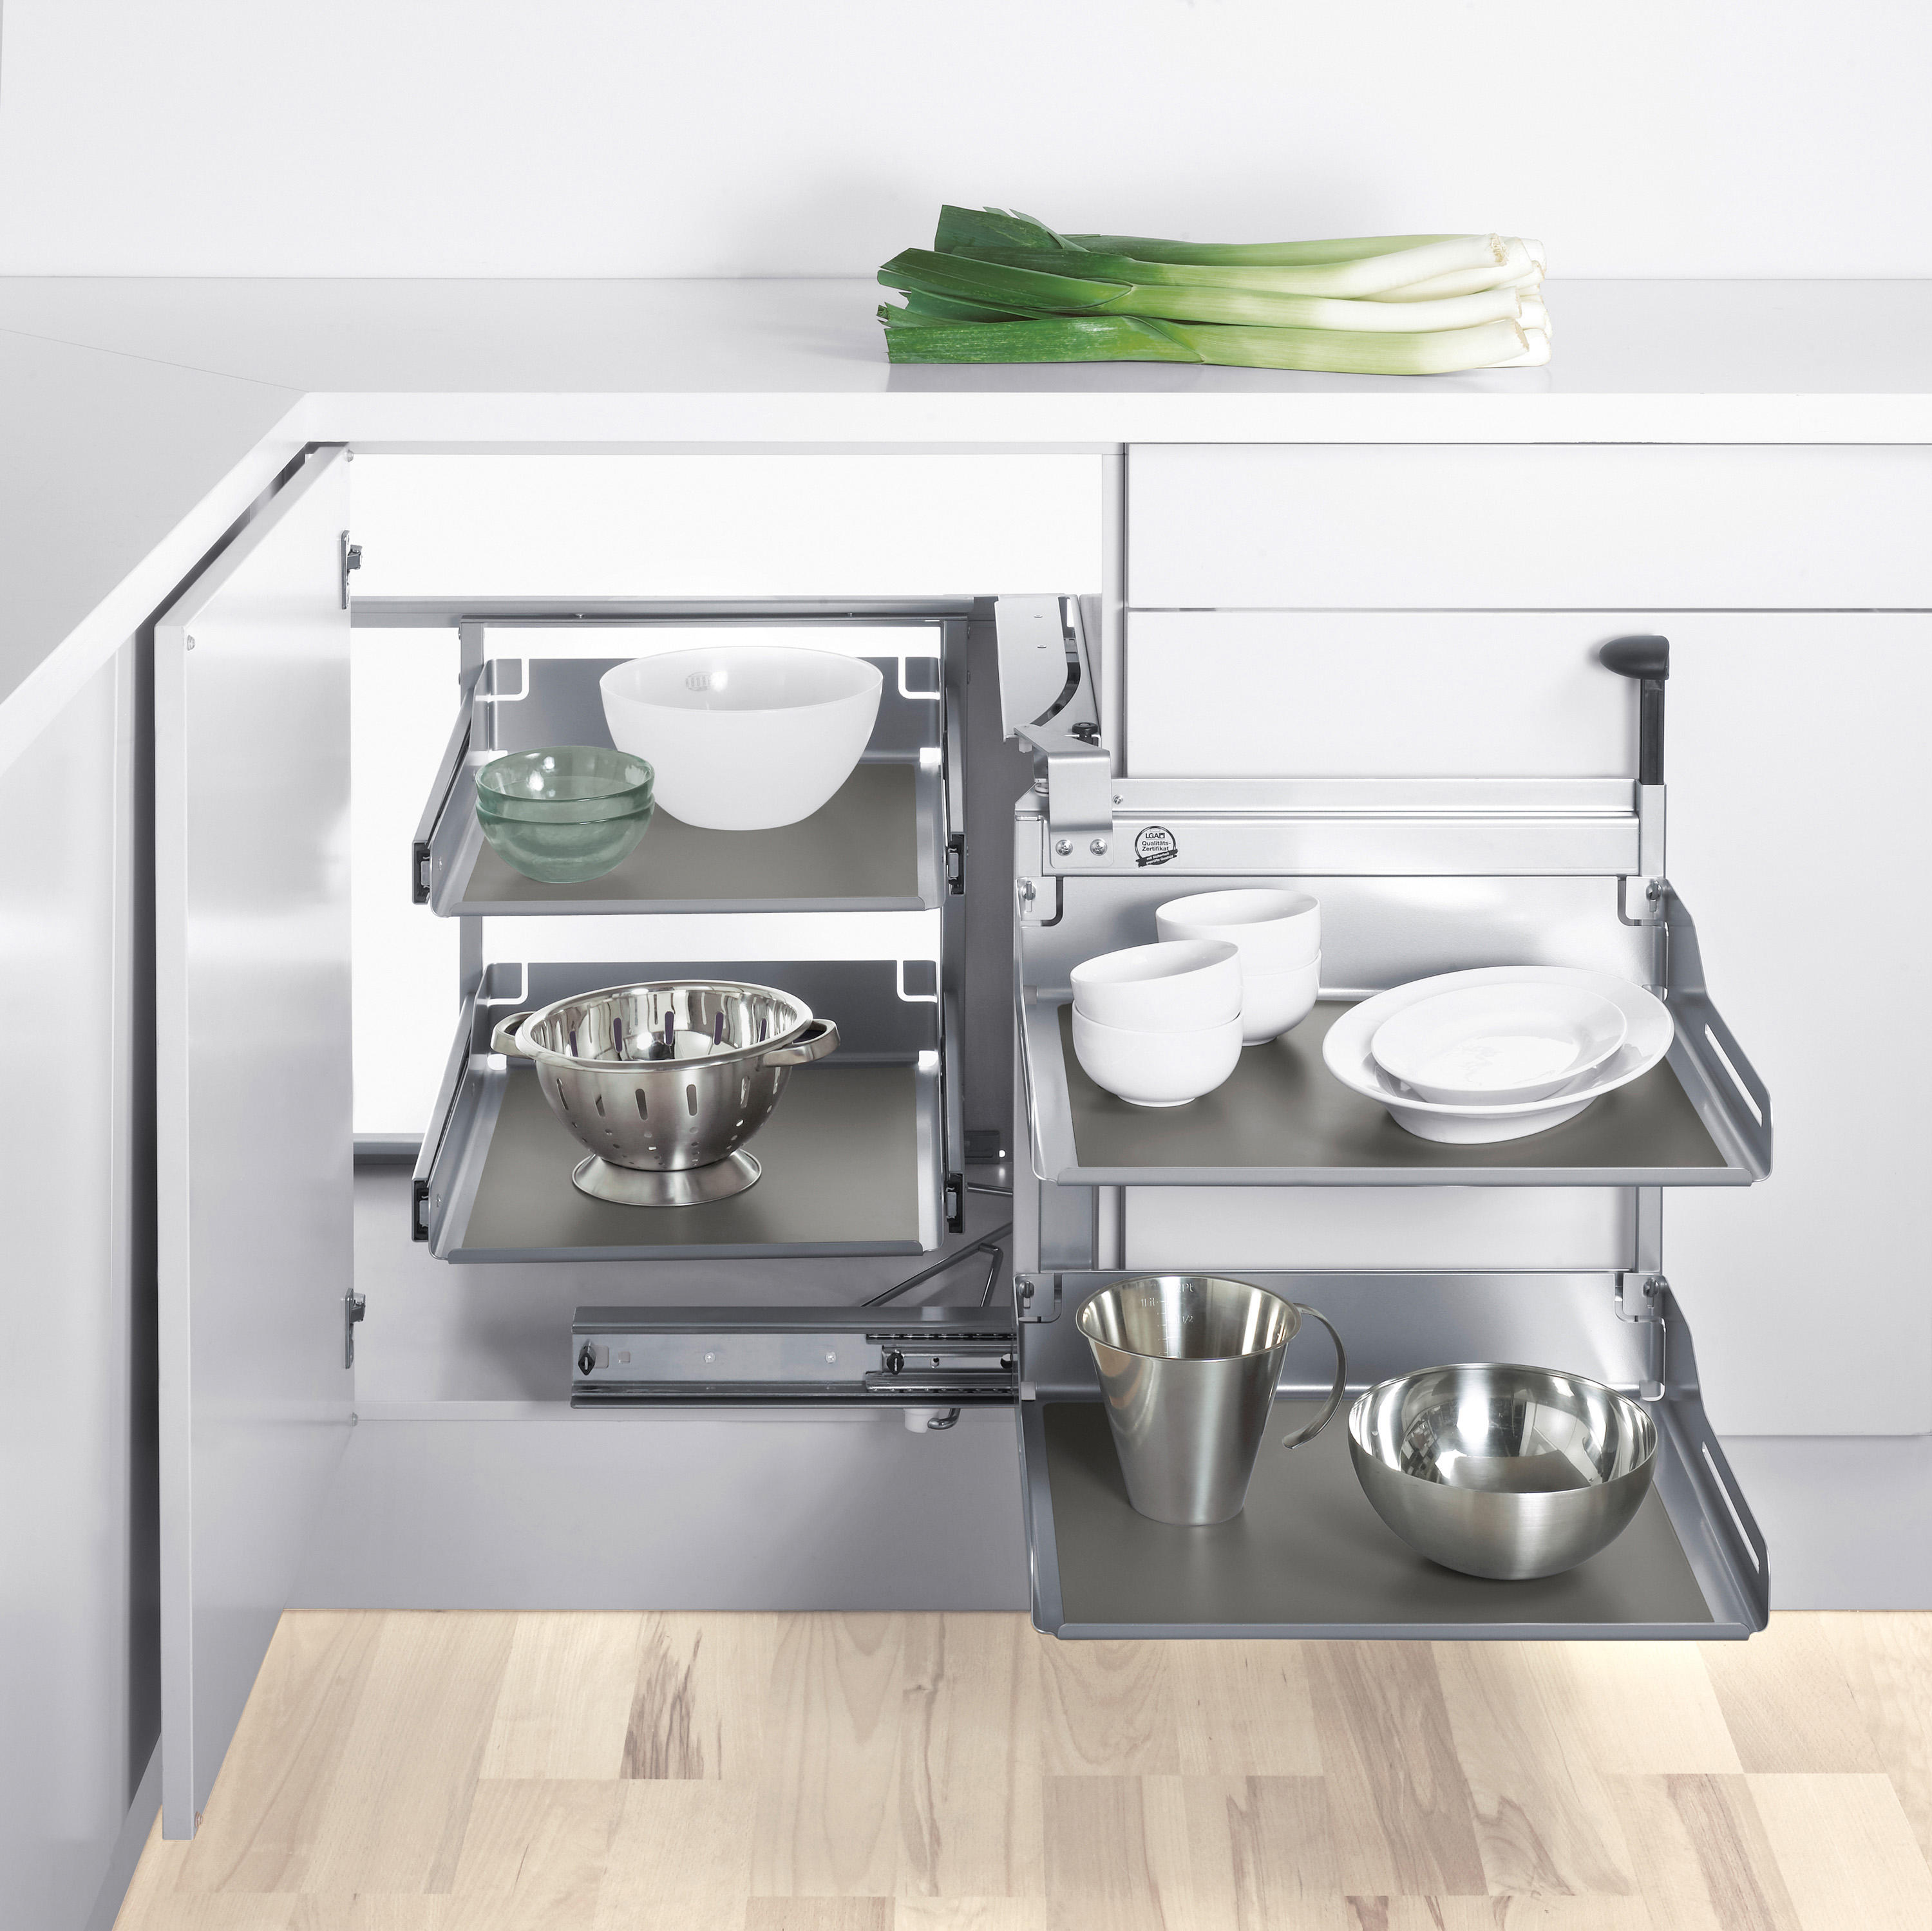 Magic Corner Comfort Pull Out By Peka System Kitchen Organization